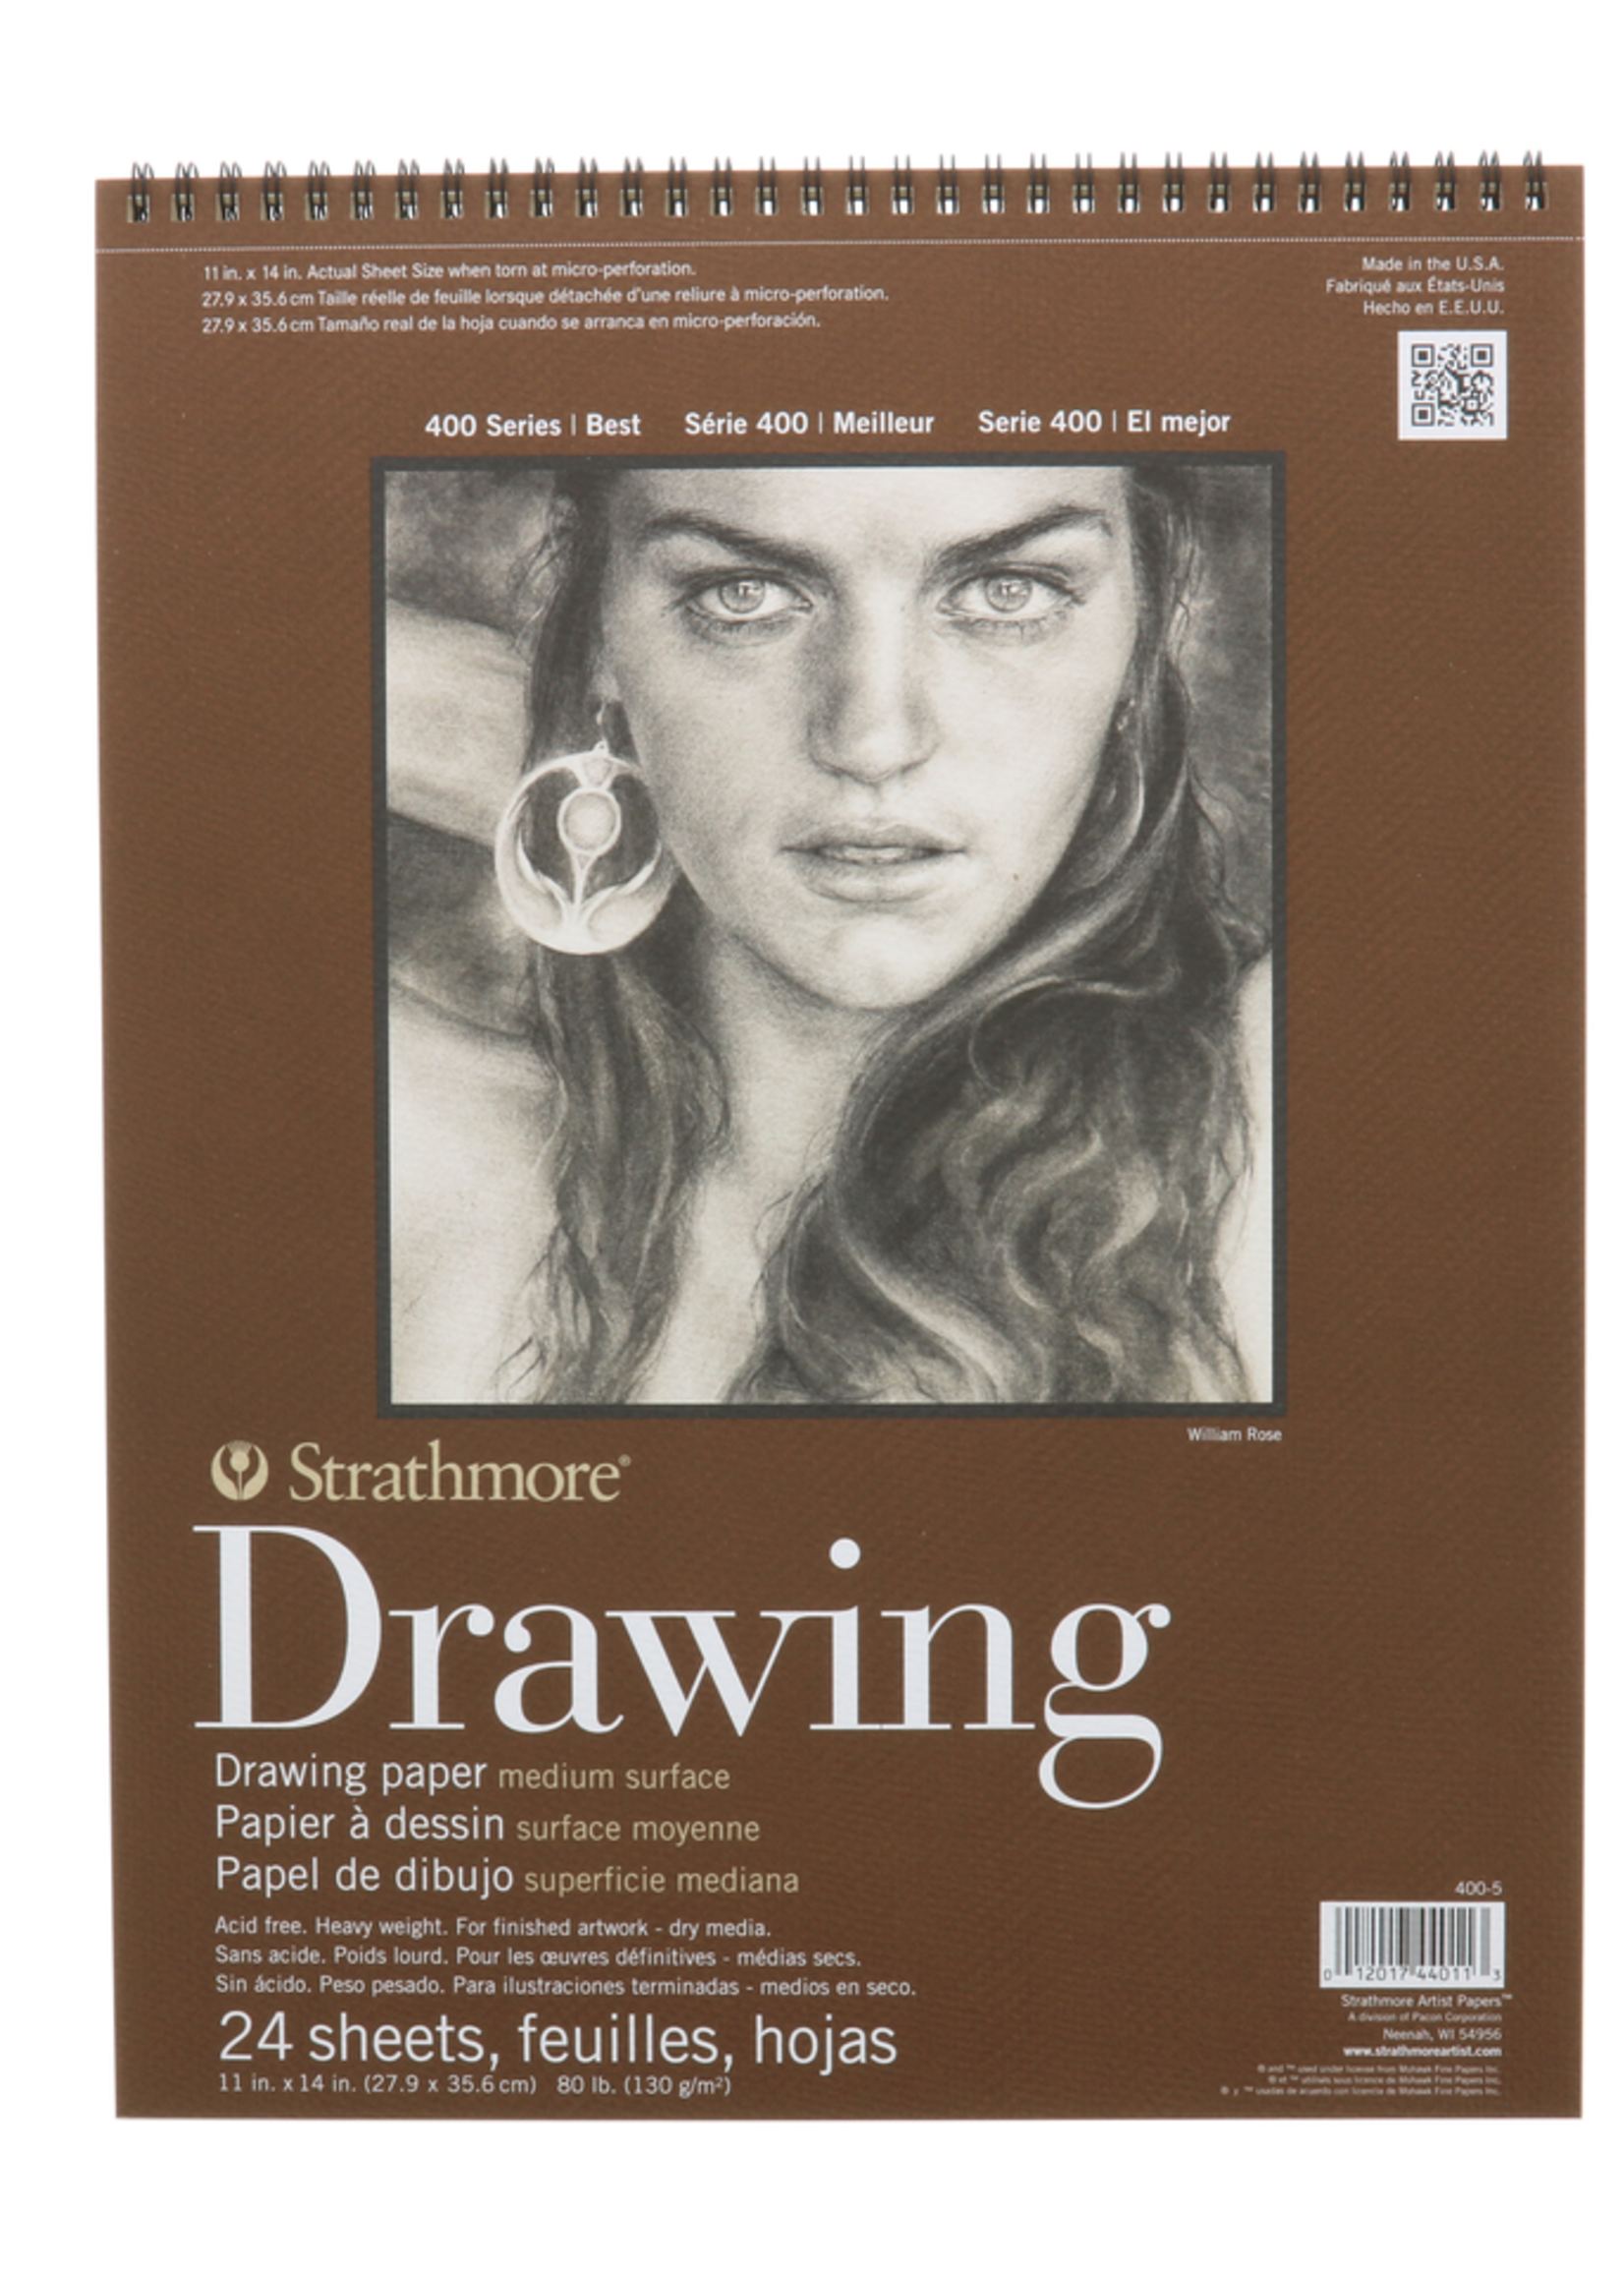 PACON/STRATHMORE DRAWING PAD 24 SHEETS